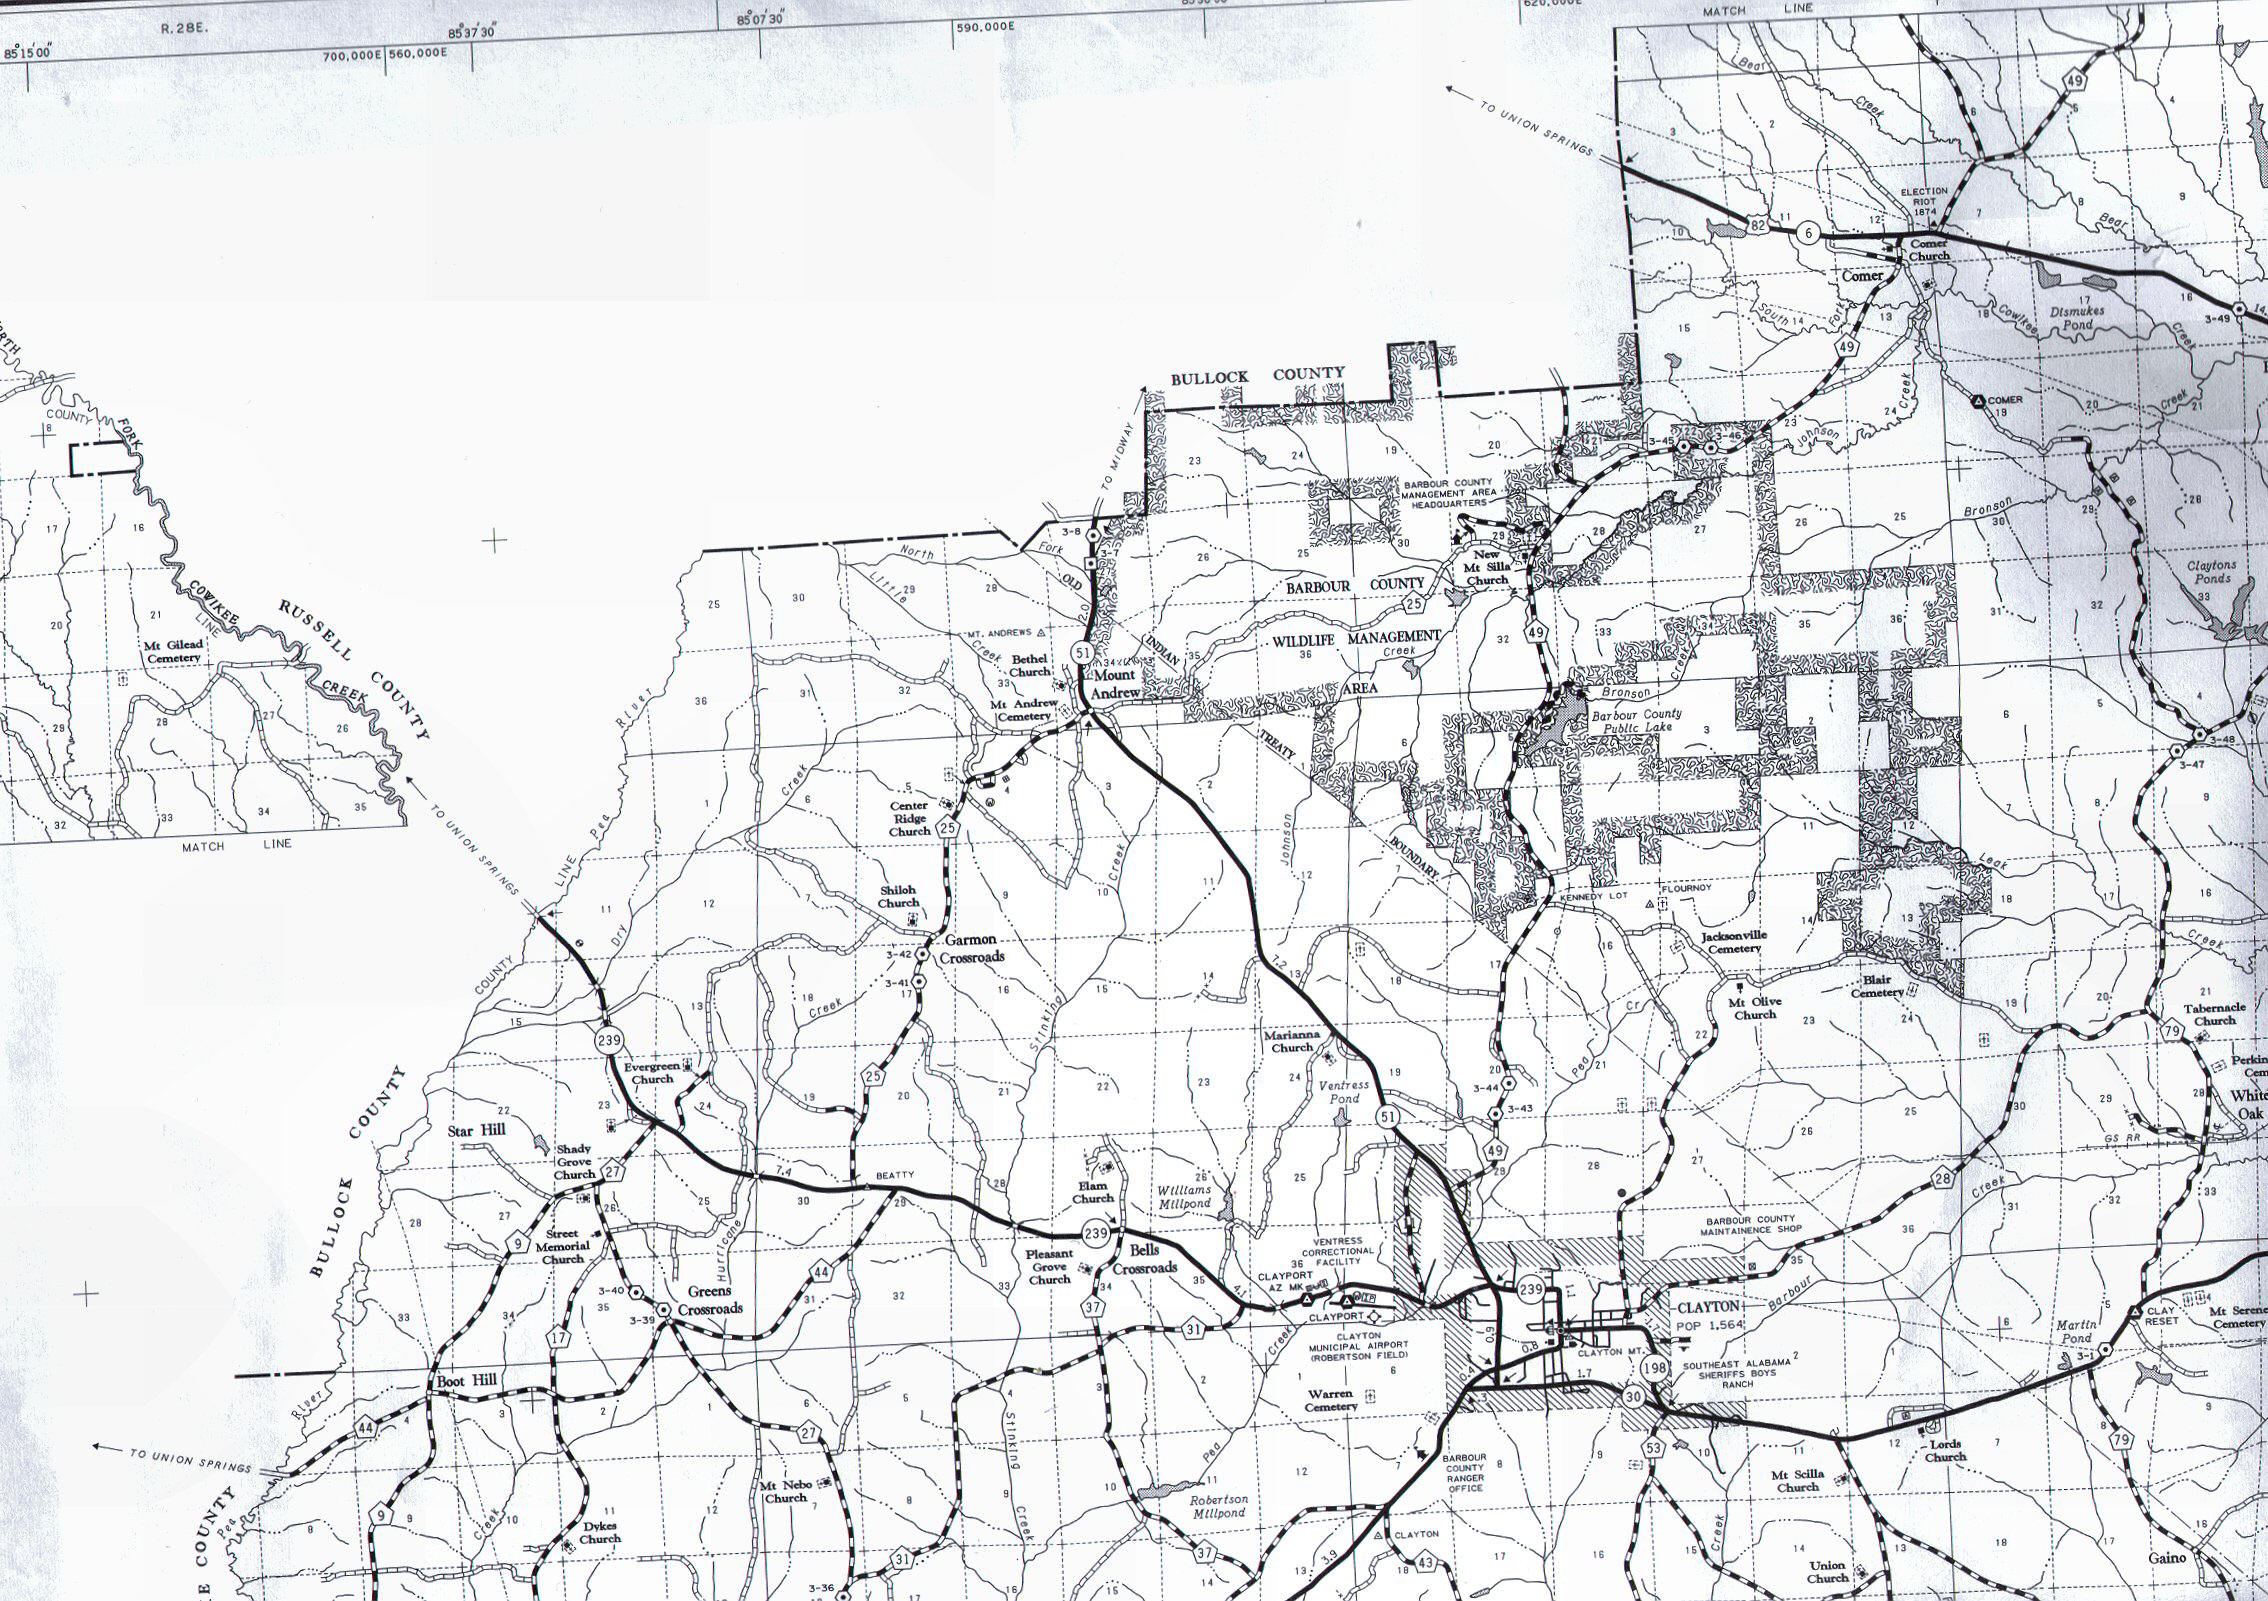 Ozh 62435 Luh besides Printable Blank World Map Outline moreover Barbour County Alabama Map together with  on usa full map cities